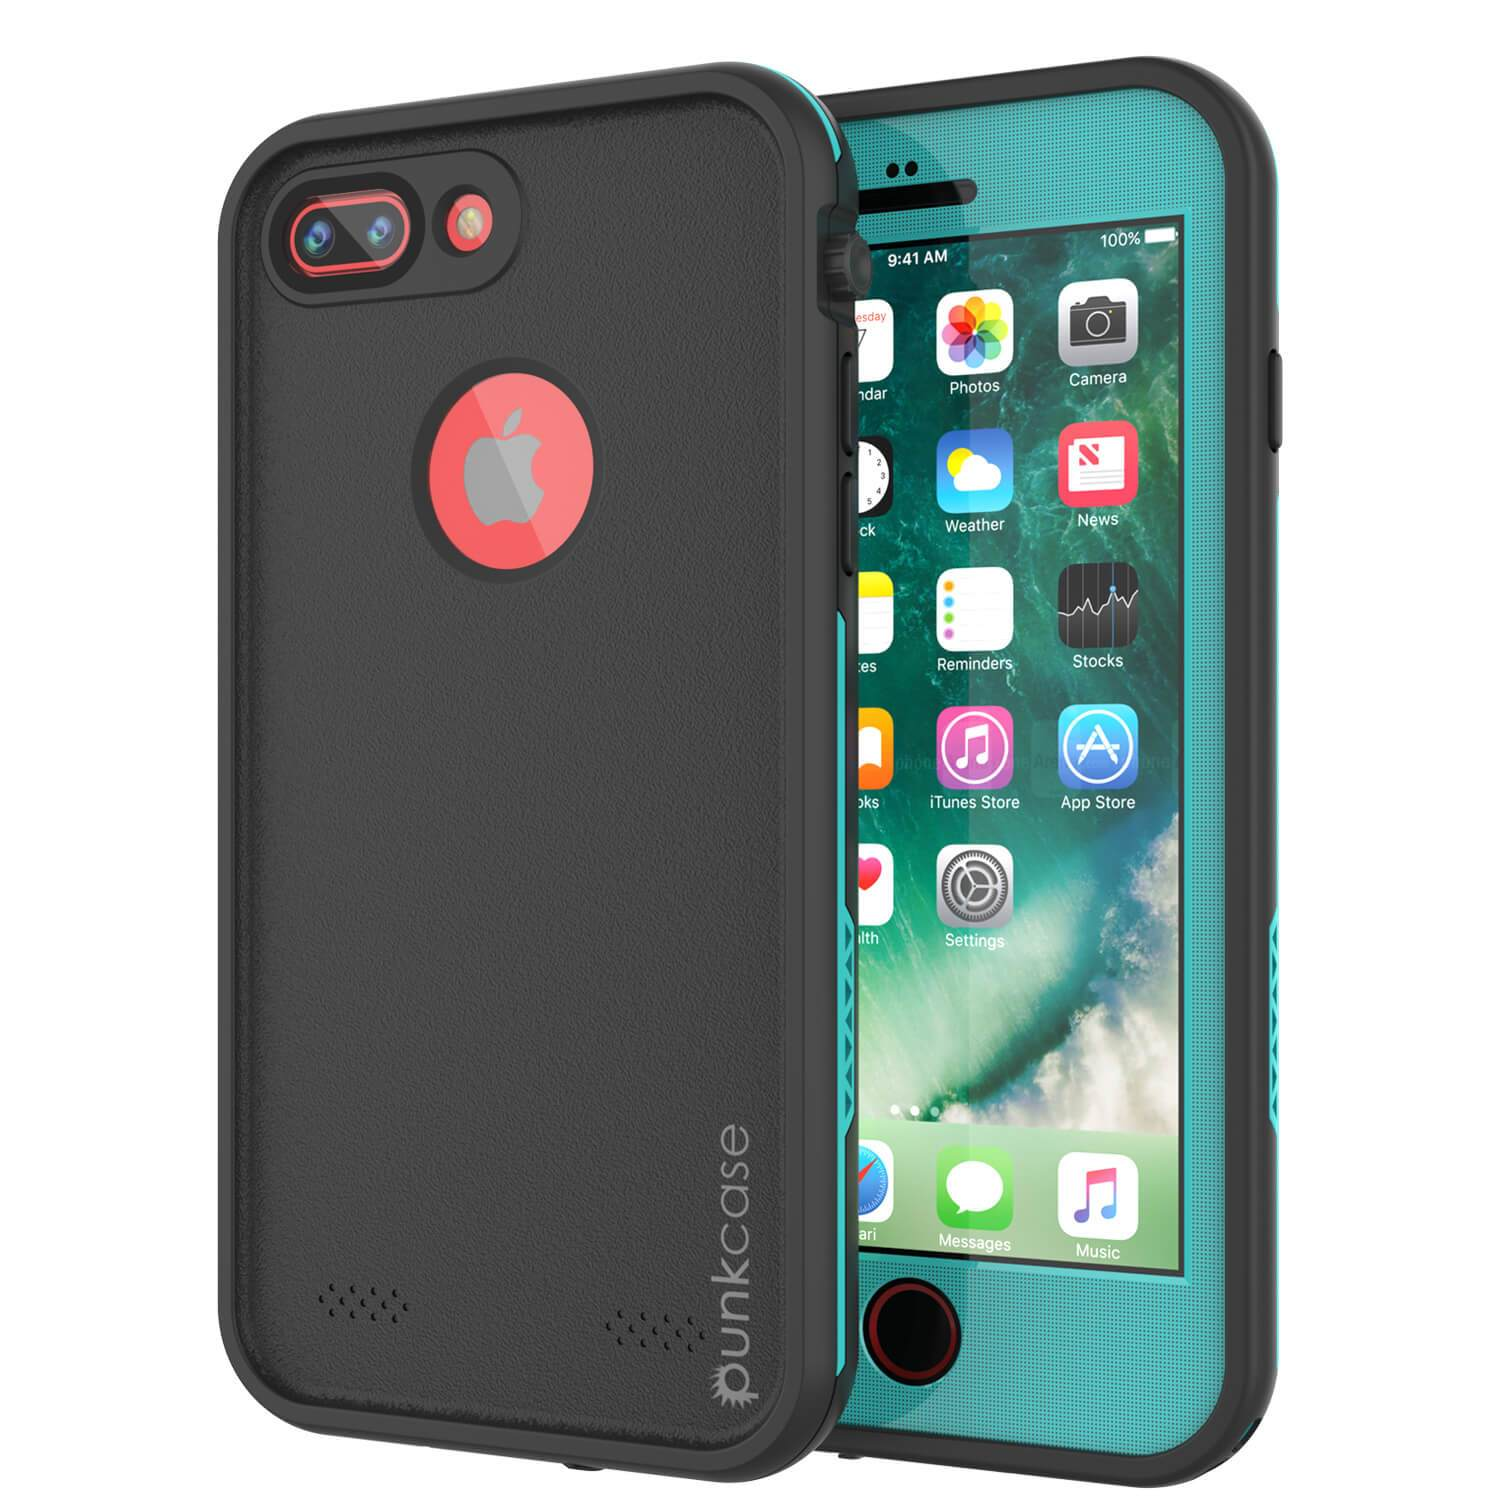 outlet store bb31f e74a1 iPhone 8+ Plus Waterproof Case, Punkcase SpikeStar Teal Series | Thin Fit  6.6ft Underwater IP68